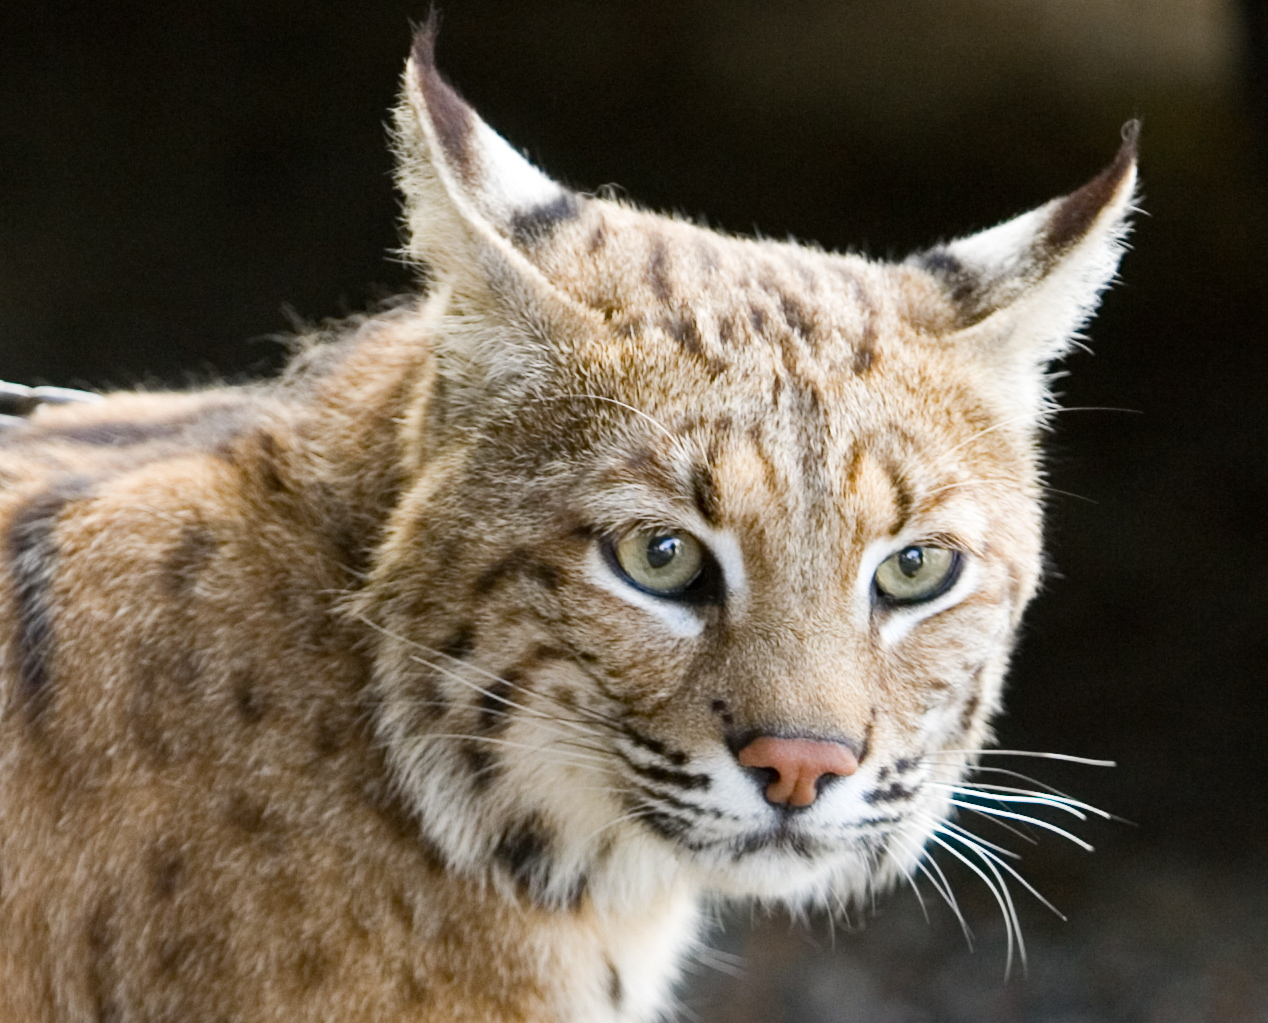 Bobcat_7.JPG (JPEG Image, 1268x1023 pixels) - Scaled (54%)